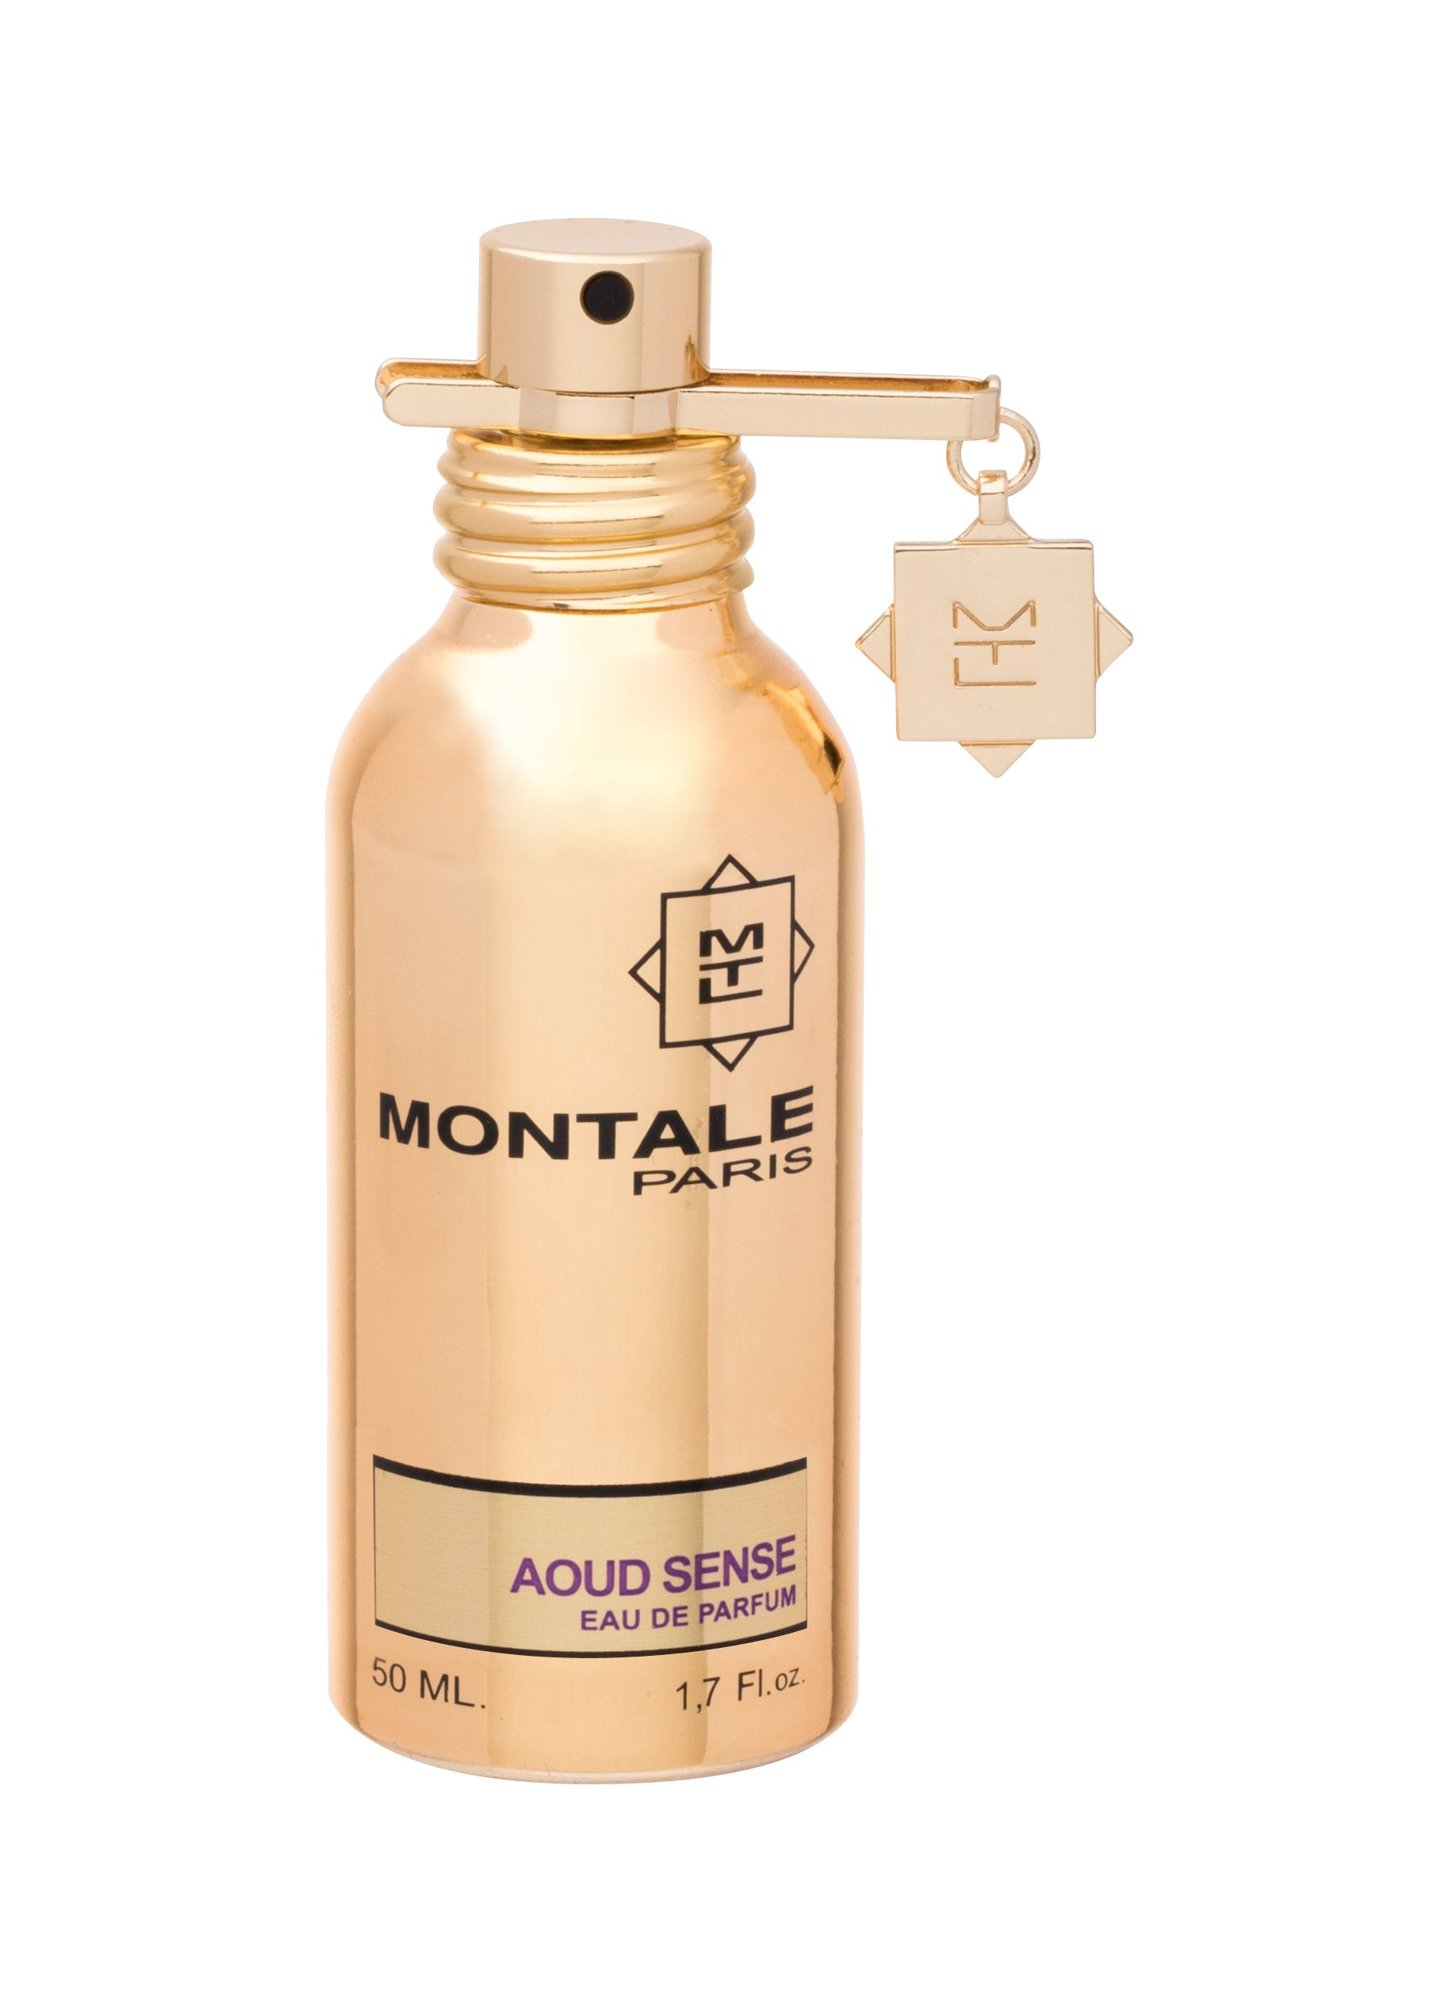 Montale Paris Aoud Sense EDP 50ml